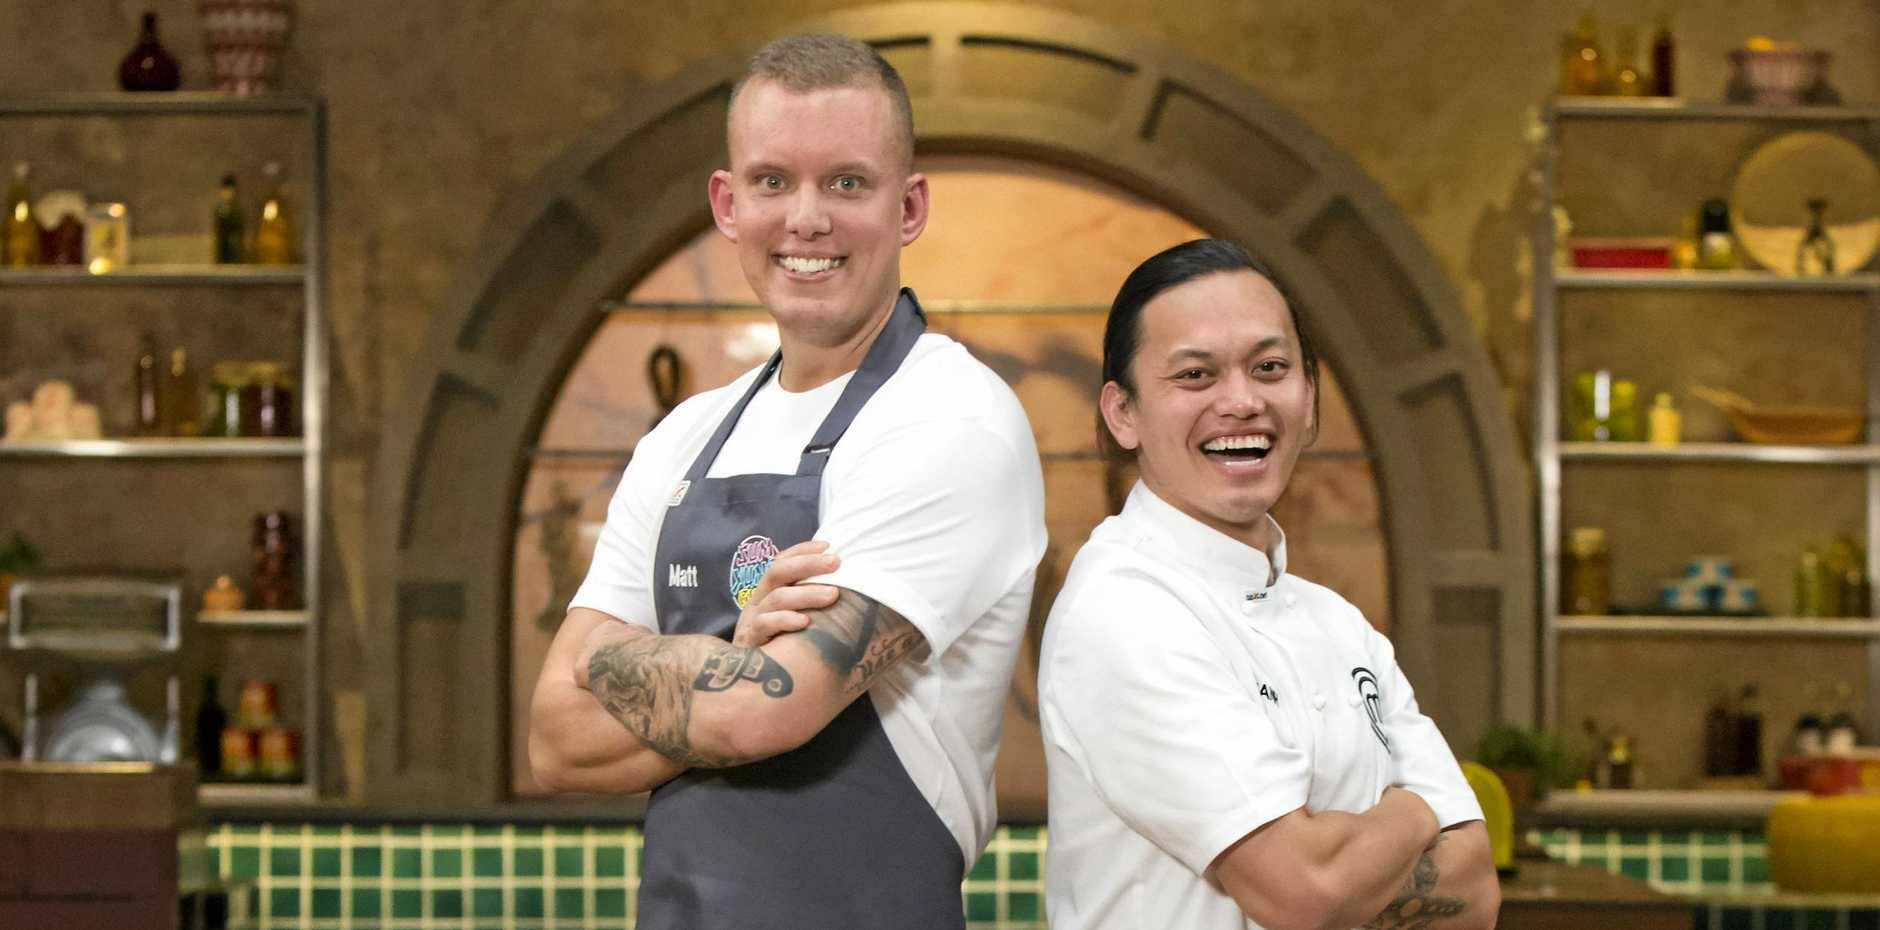 BACK ON TV: MasterChef alumni Matt Sinclair returned as a guest chef to cook against contestant Khanh Ong.